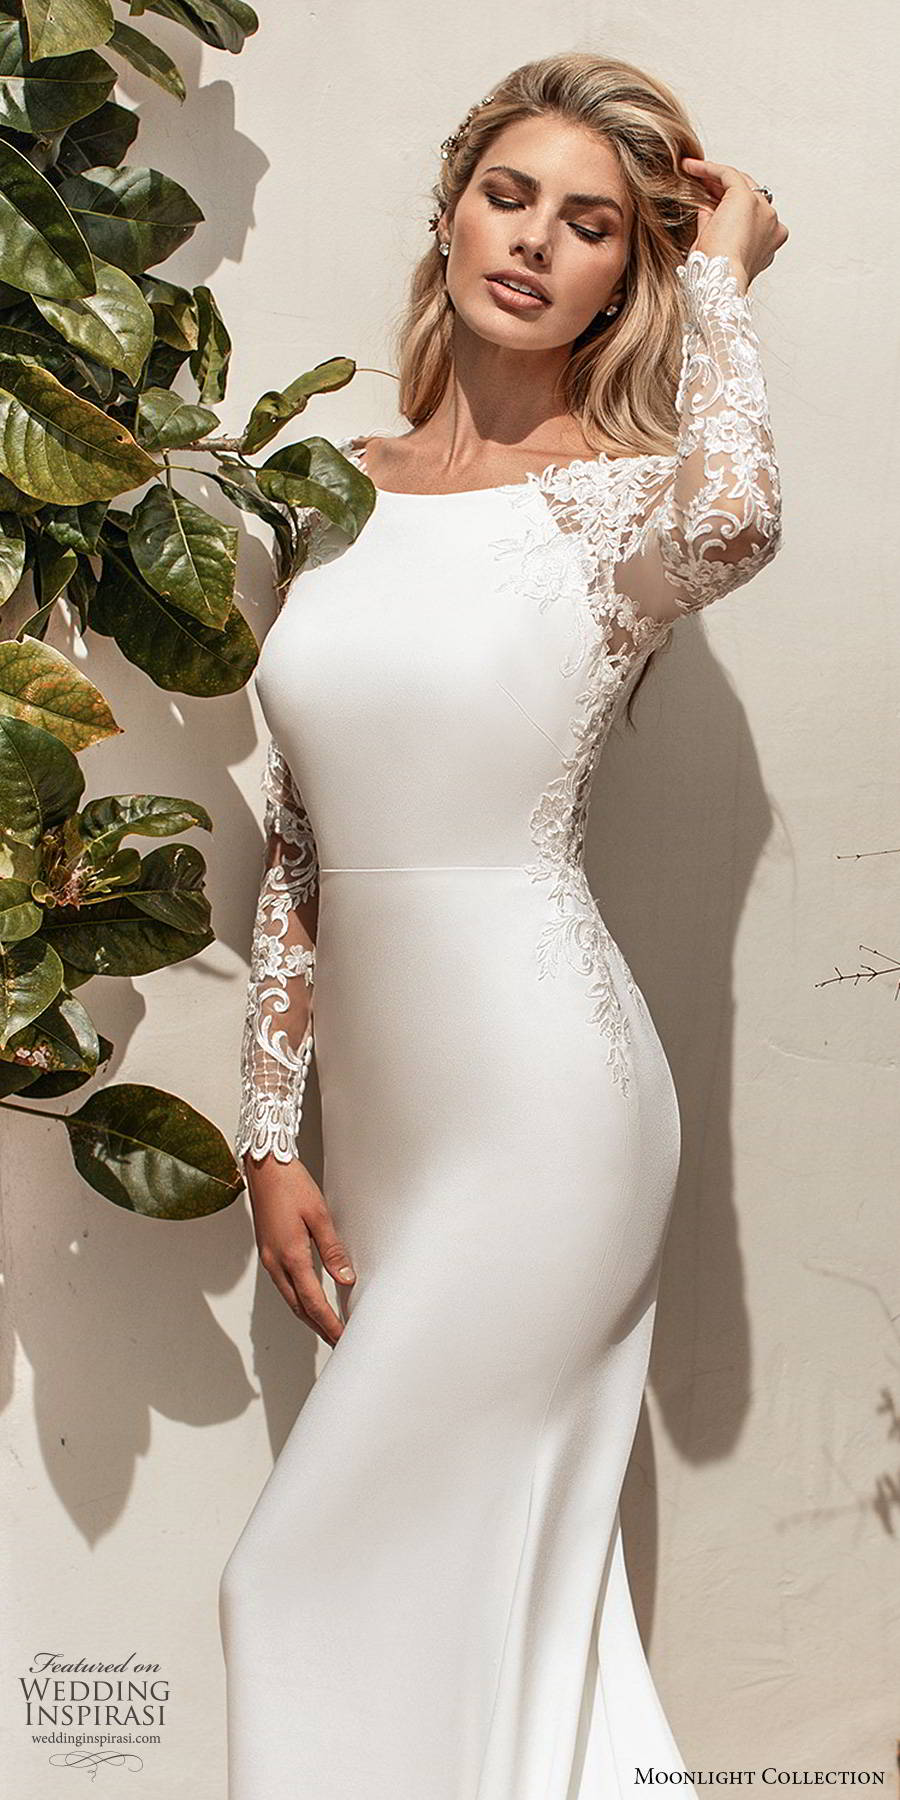 moonlight collection spring 2020 bridal illusion lace long sleeves bateau neckline clean bodice minimalist elegant sheath wedding dress illusion back chapel train (3) zv